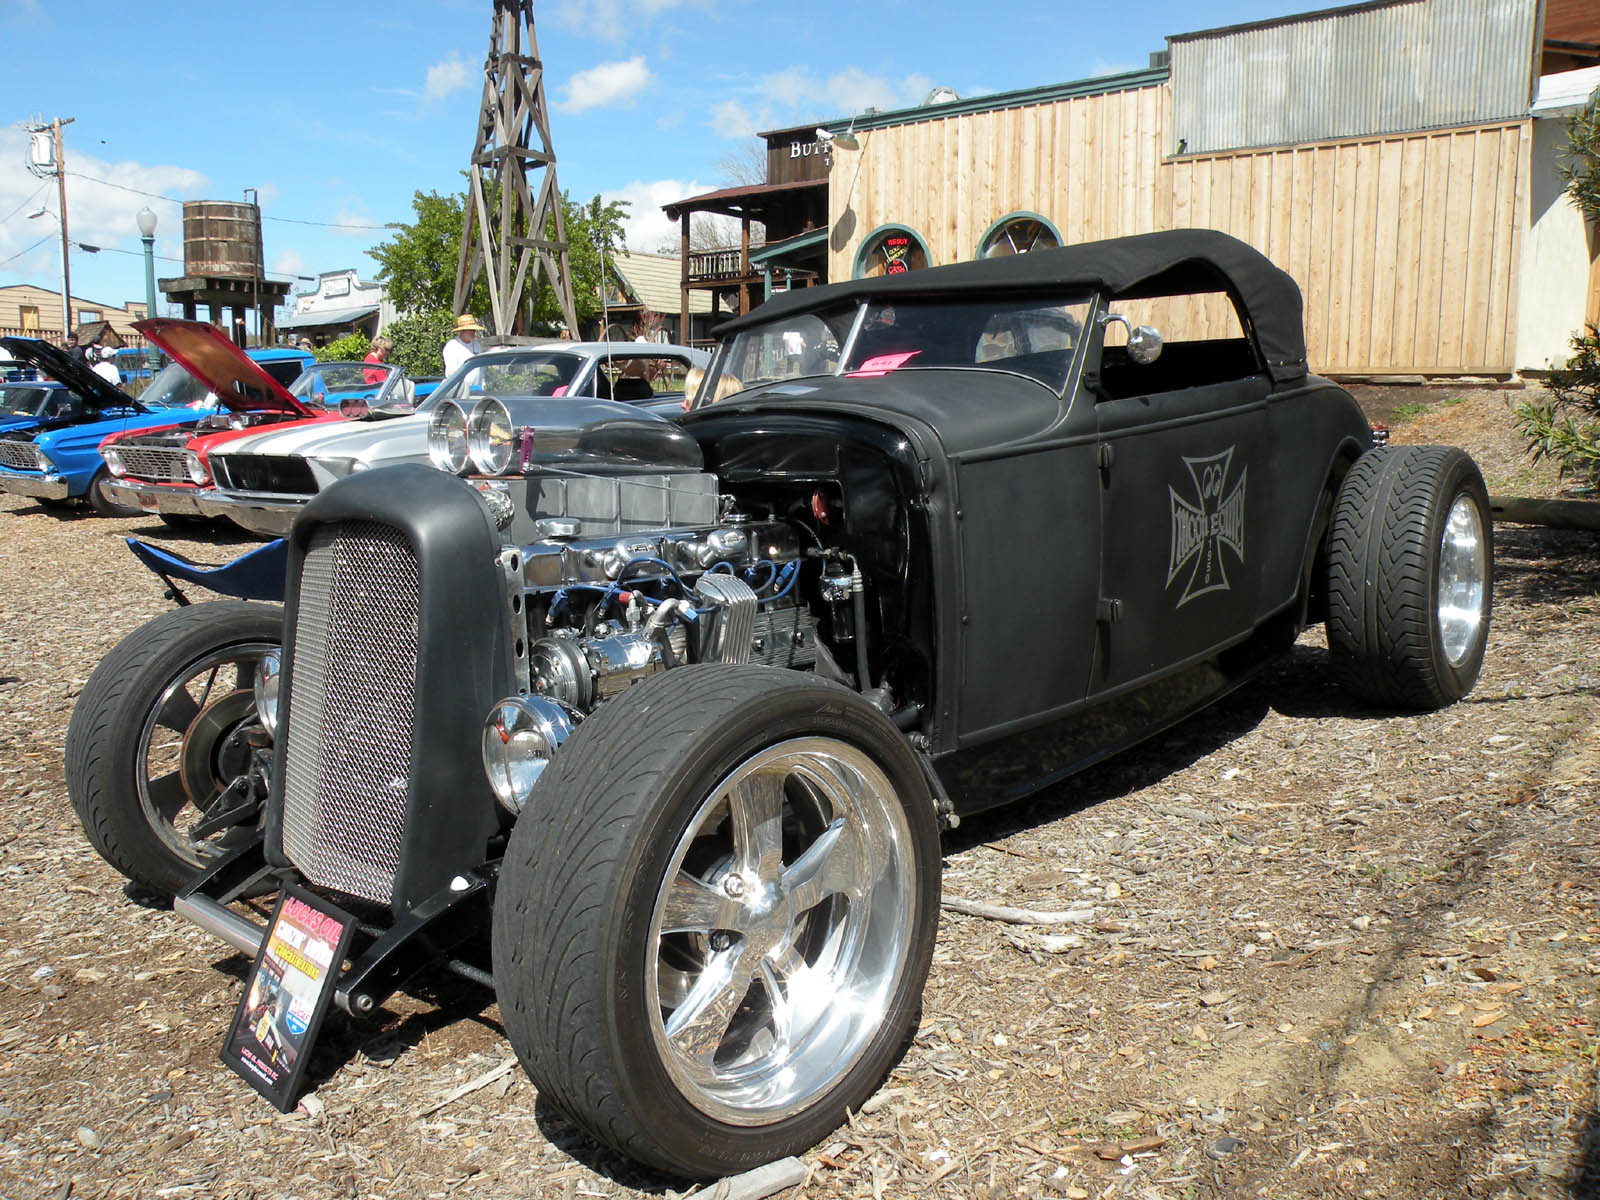 Just A Car Guy: Ever seen a ford slant six in a hot rod?